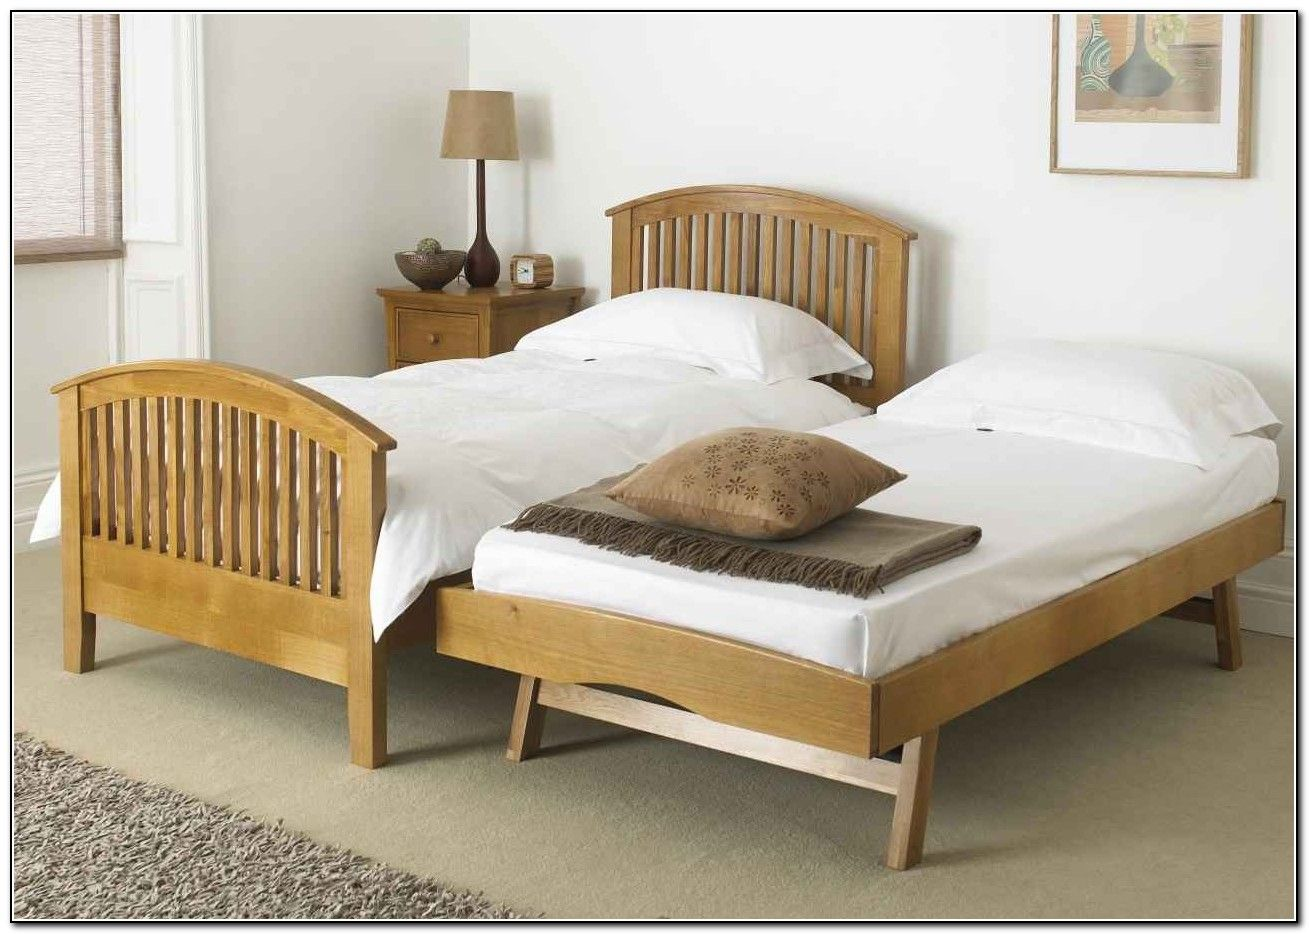 Pull Up Trundle Bed Droughtrelief Org